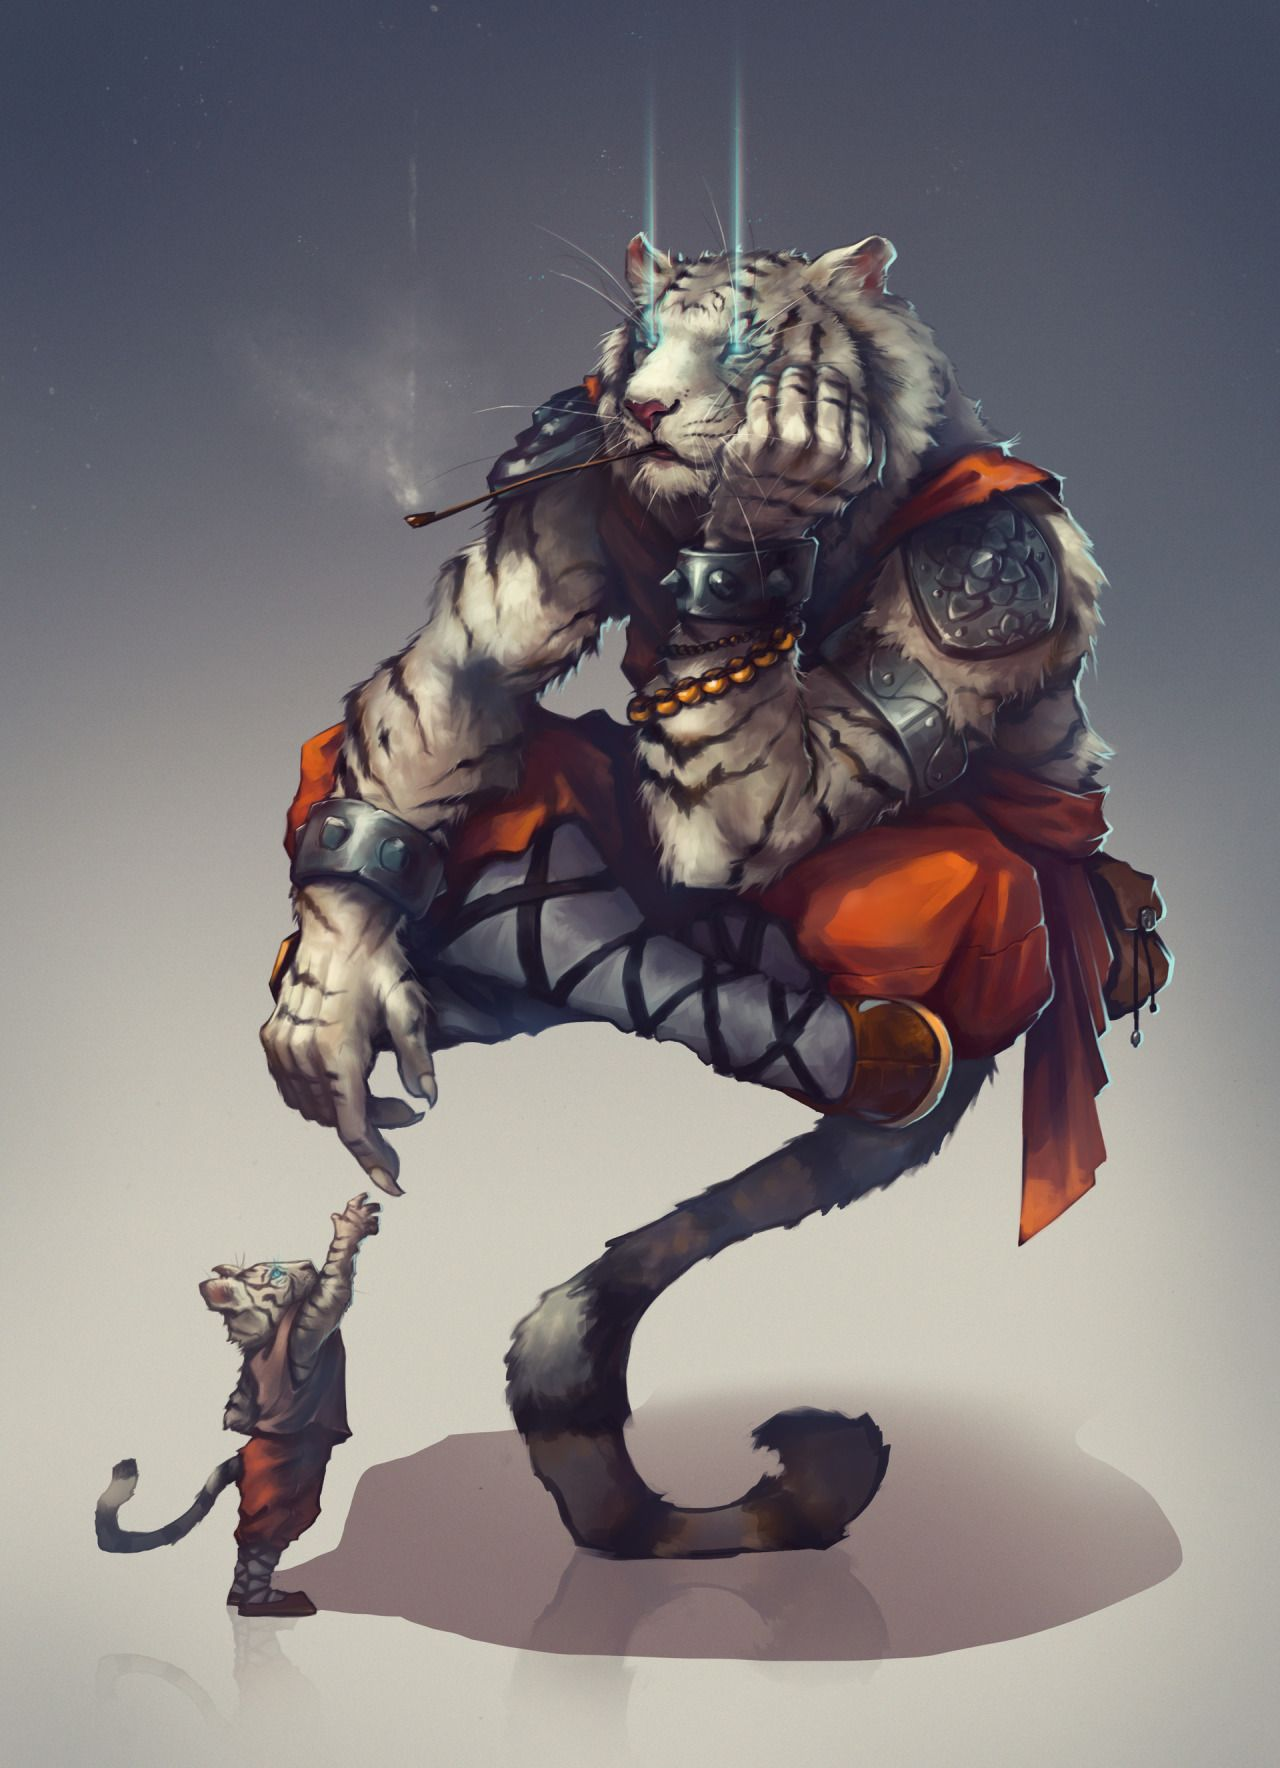 60 Arp Lee Ideas Character Art Fantasy Art Concept Art Characters 2150 votes and 113672 views on imgur: pinterest